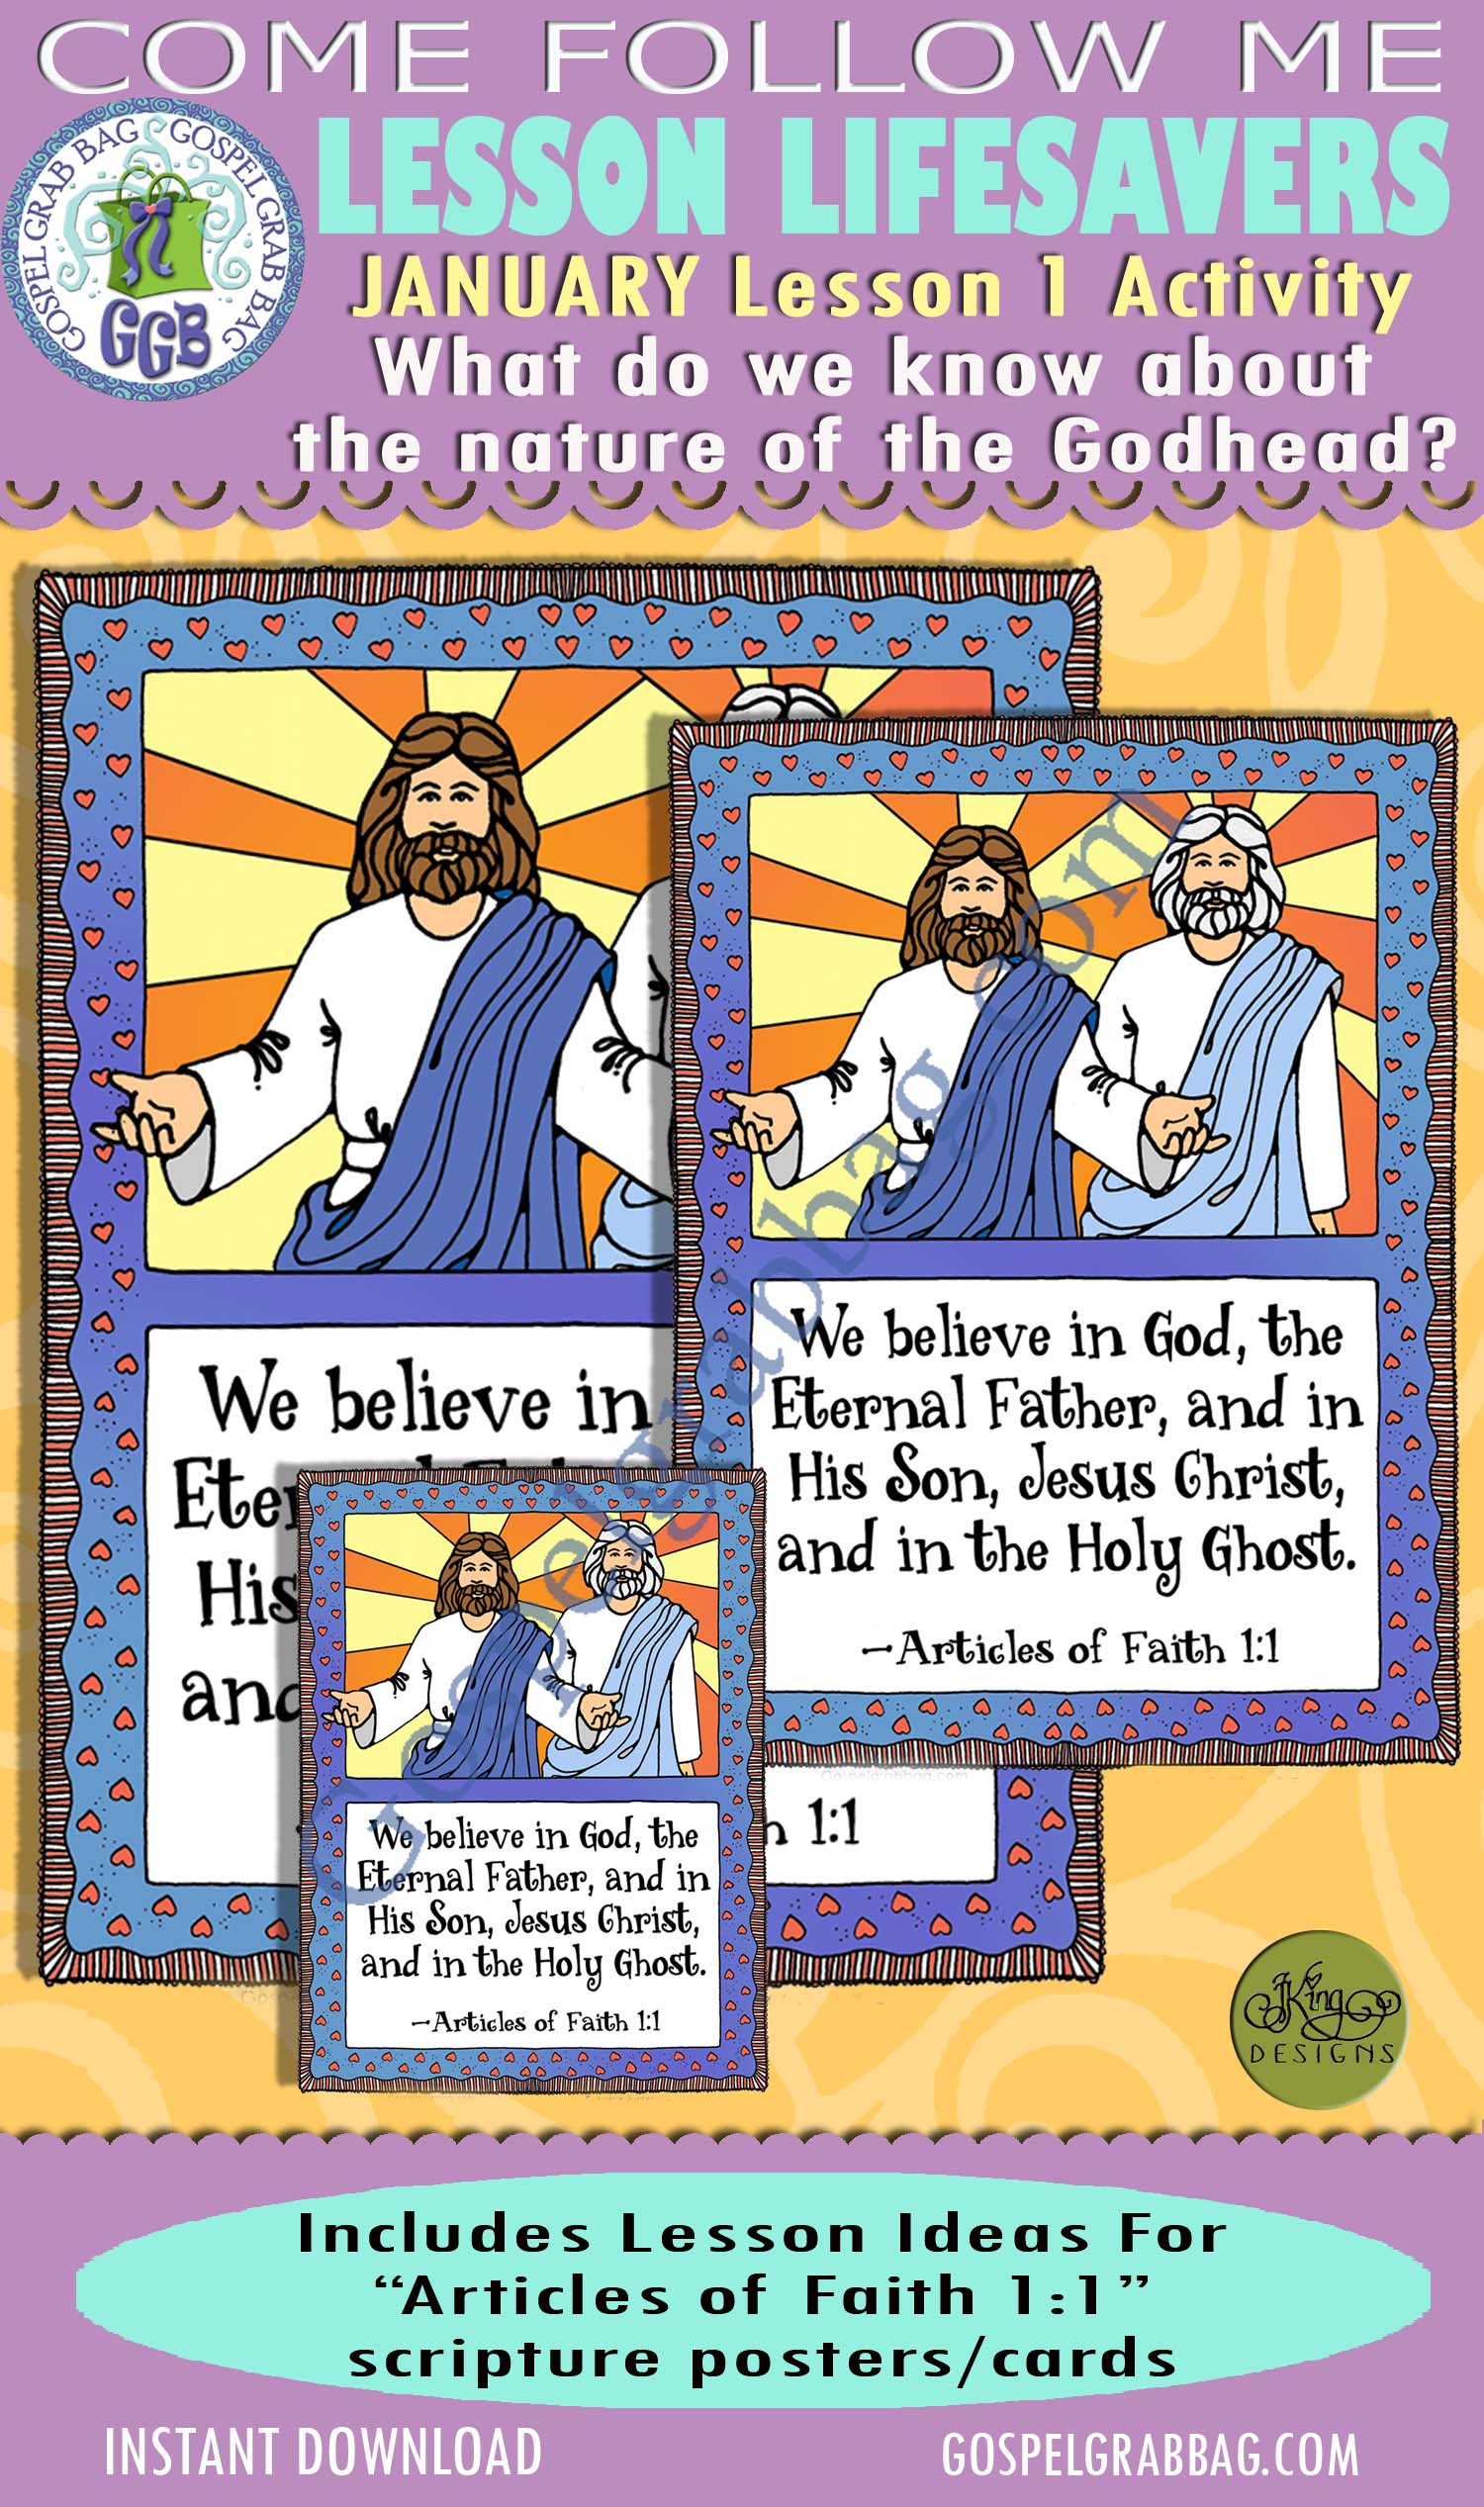 """$2.00 January Lesson 1 - Come Follow Me """"What do we know about the nature of the Godhead?"""" ACTIVITY: Articles of Faith 1 Poster and Cards"""